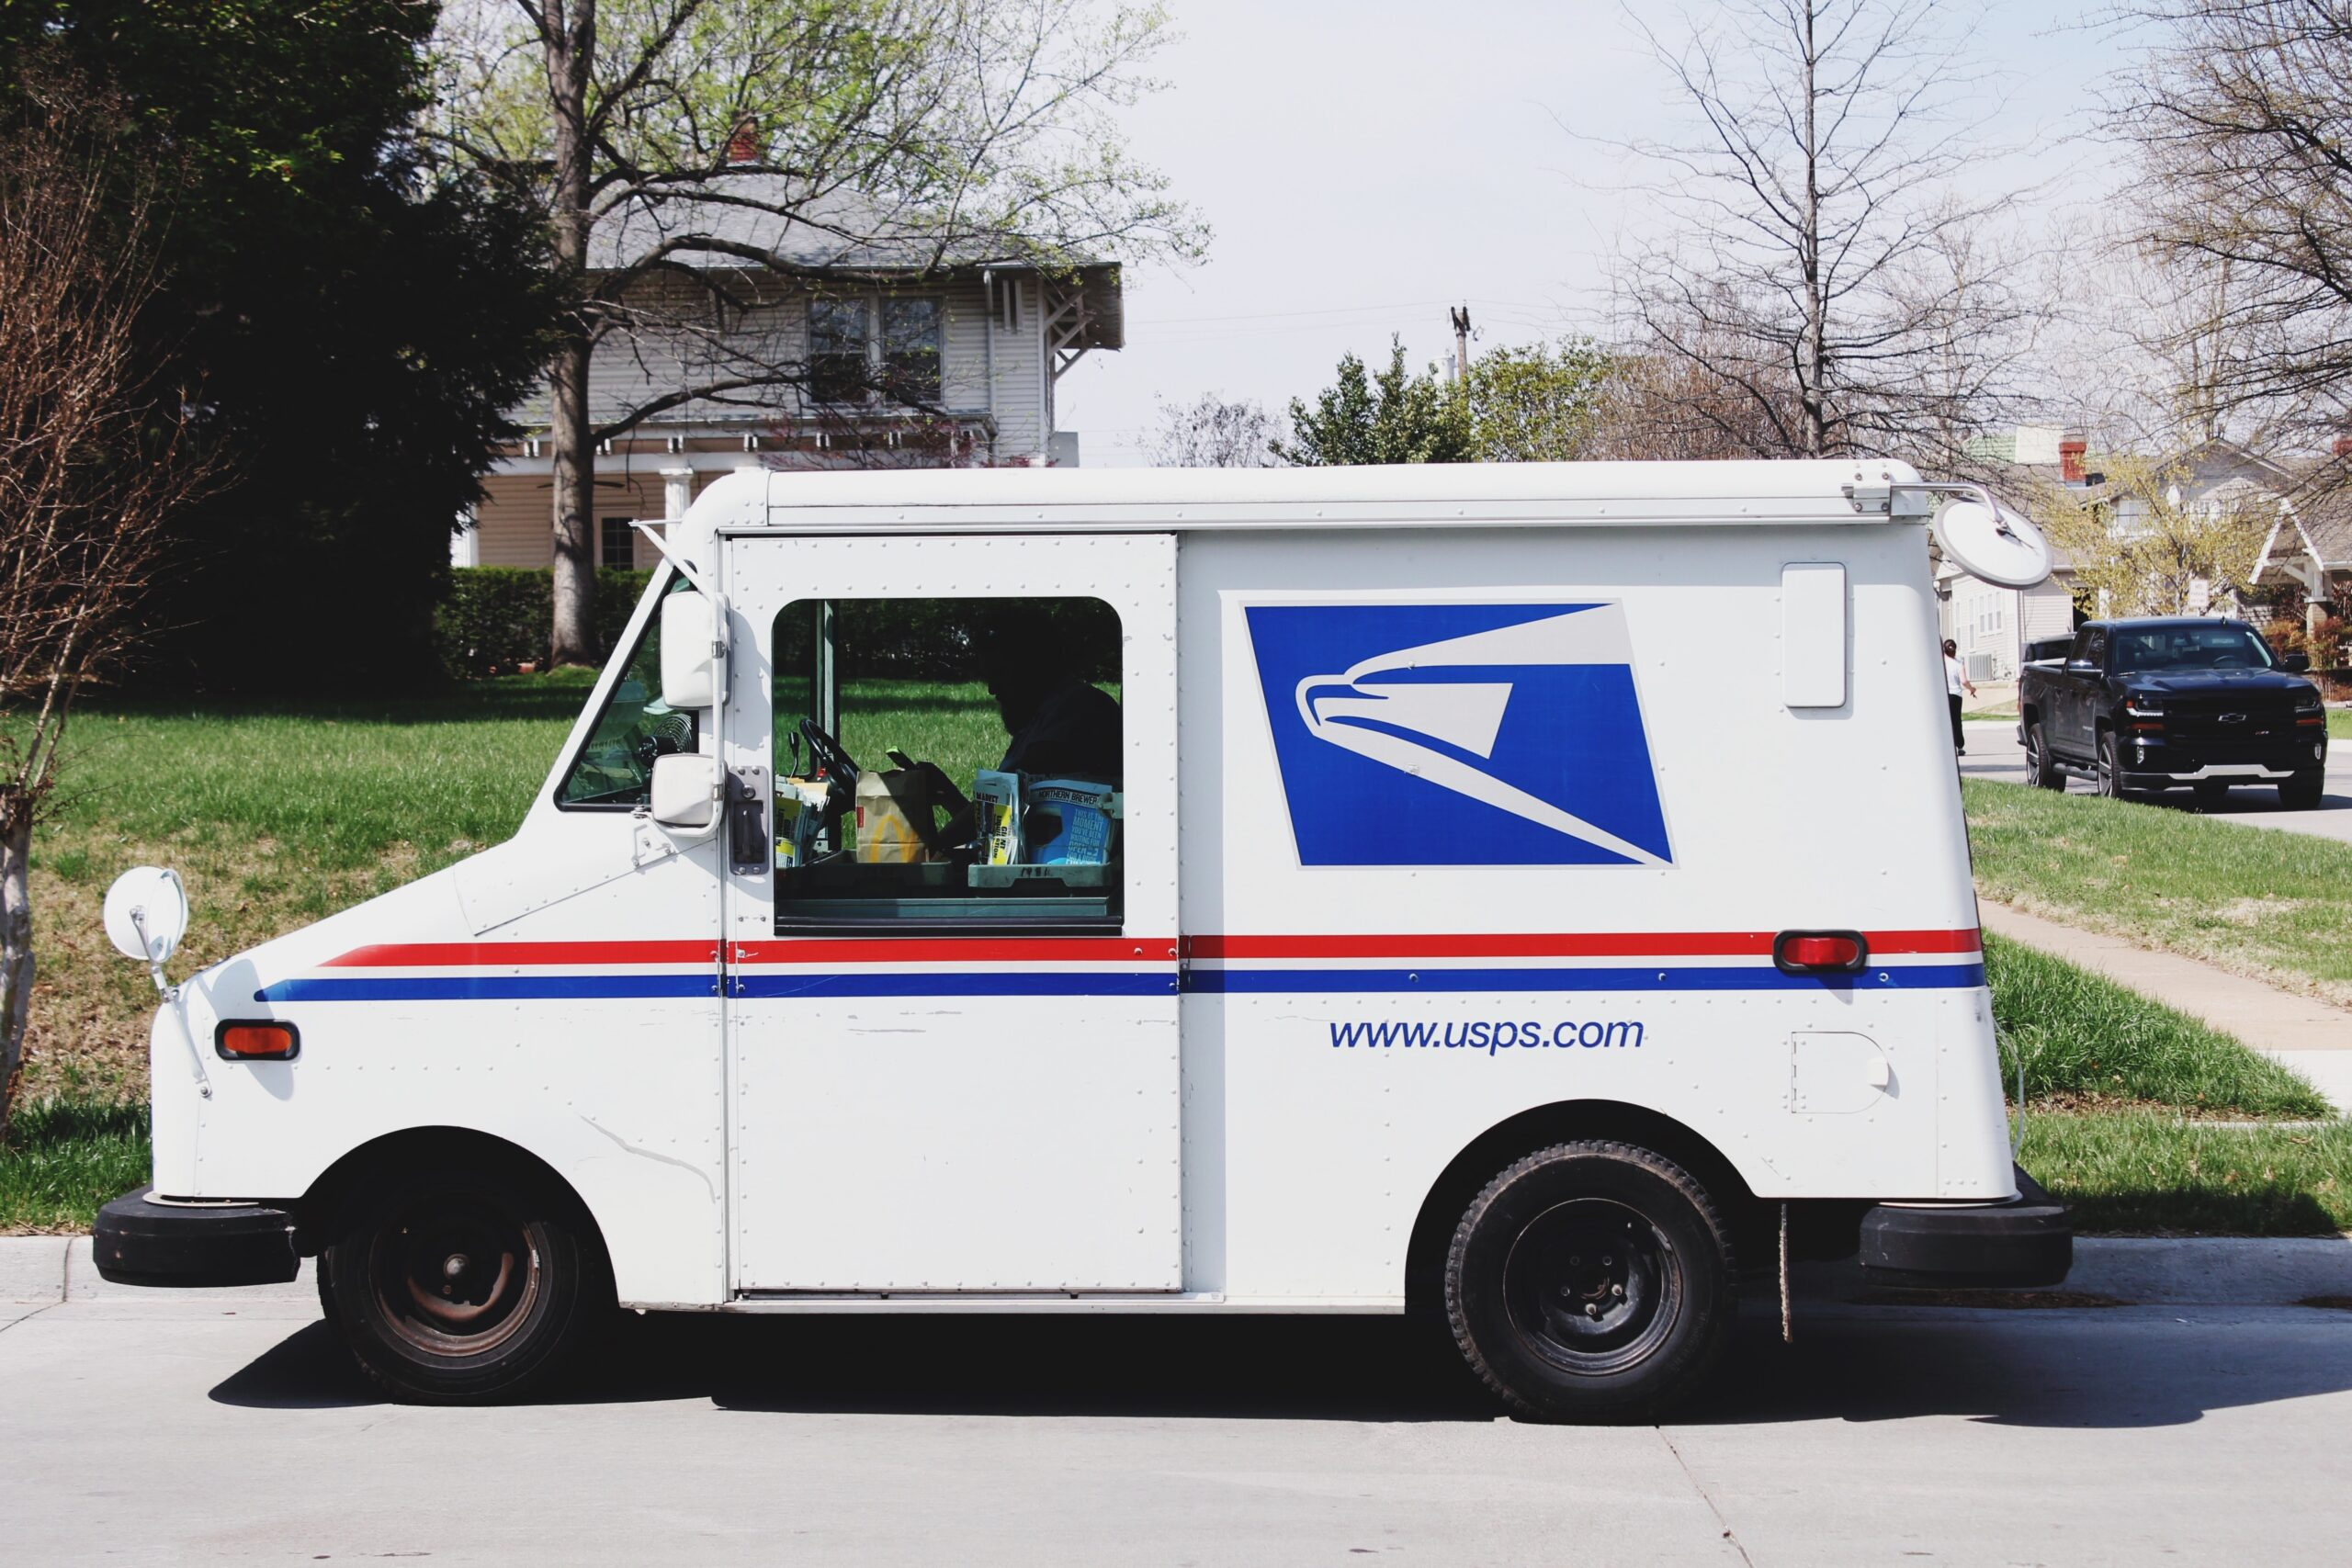 Proof of Preliminary Notice Delivery